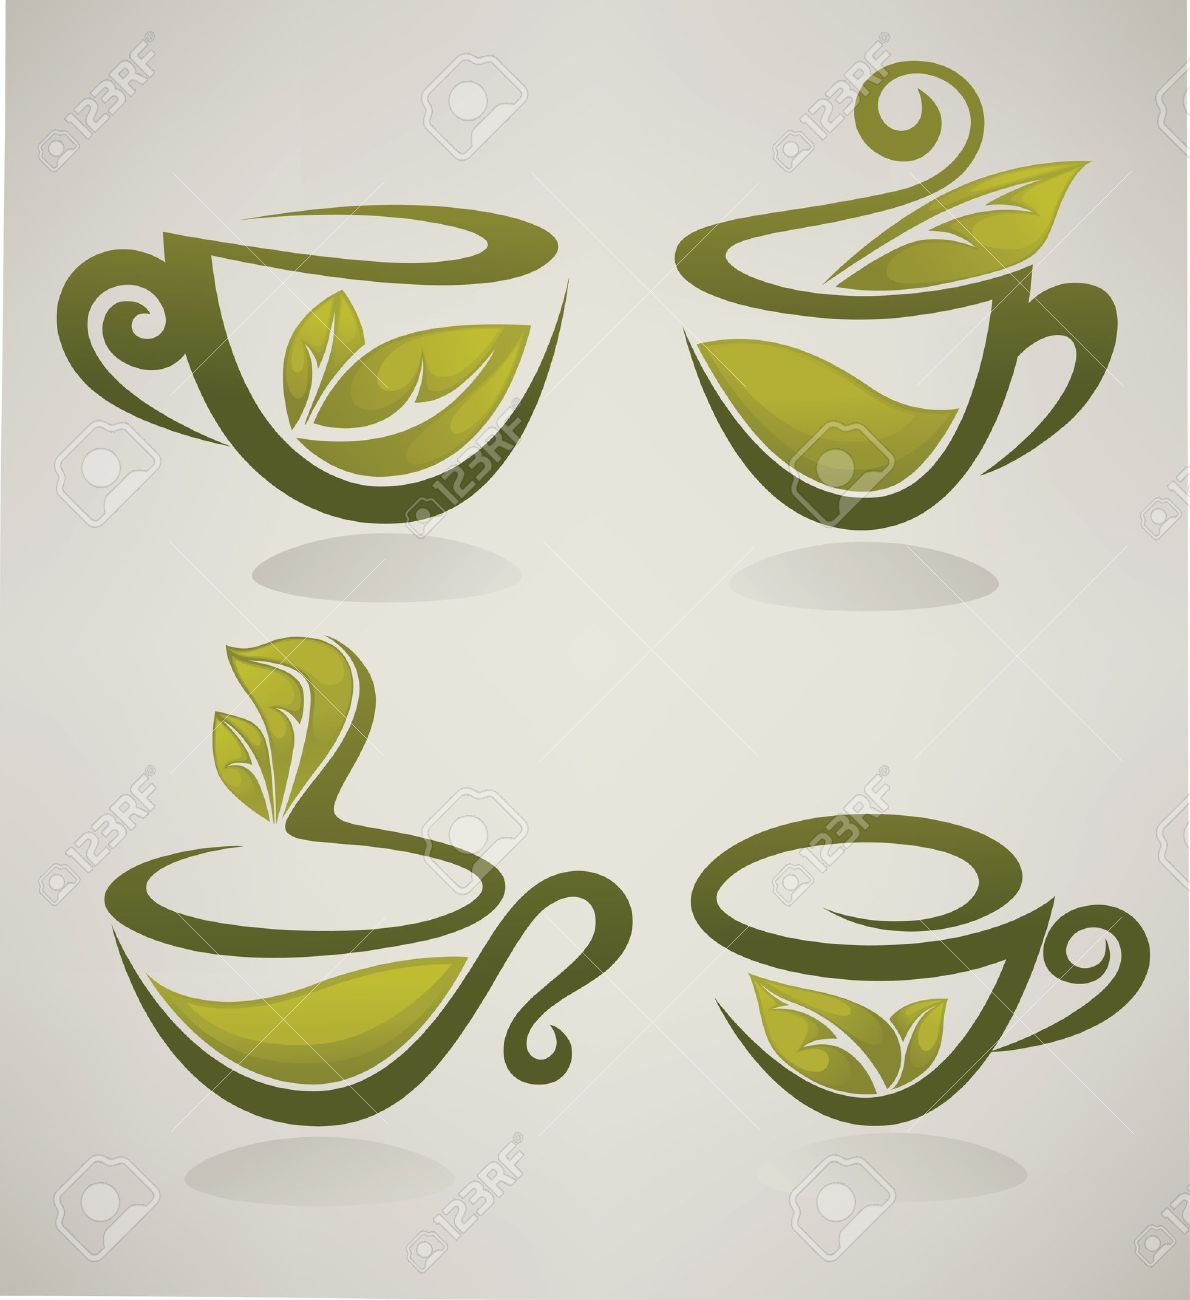 Herbal Tea Collection Of Cups Full Of Organic Drinks Royalty Free.